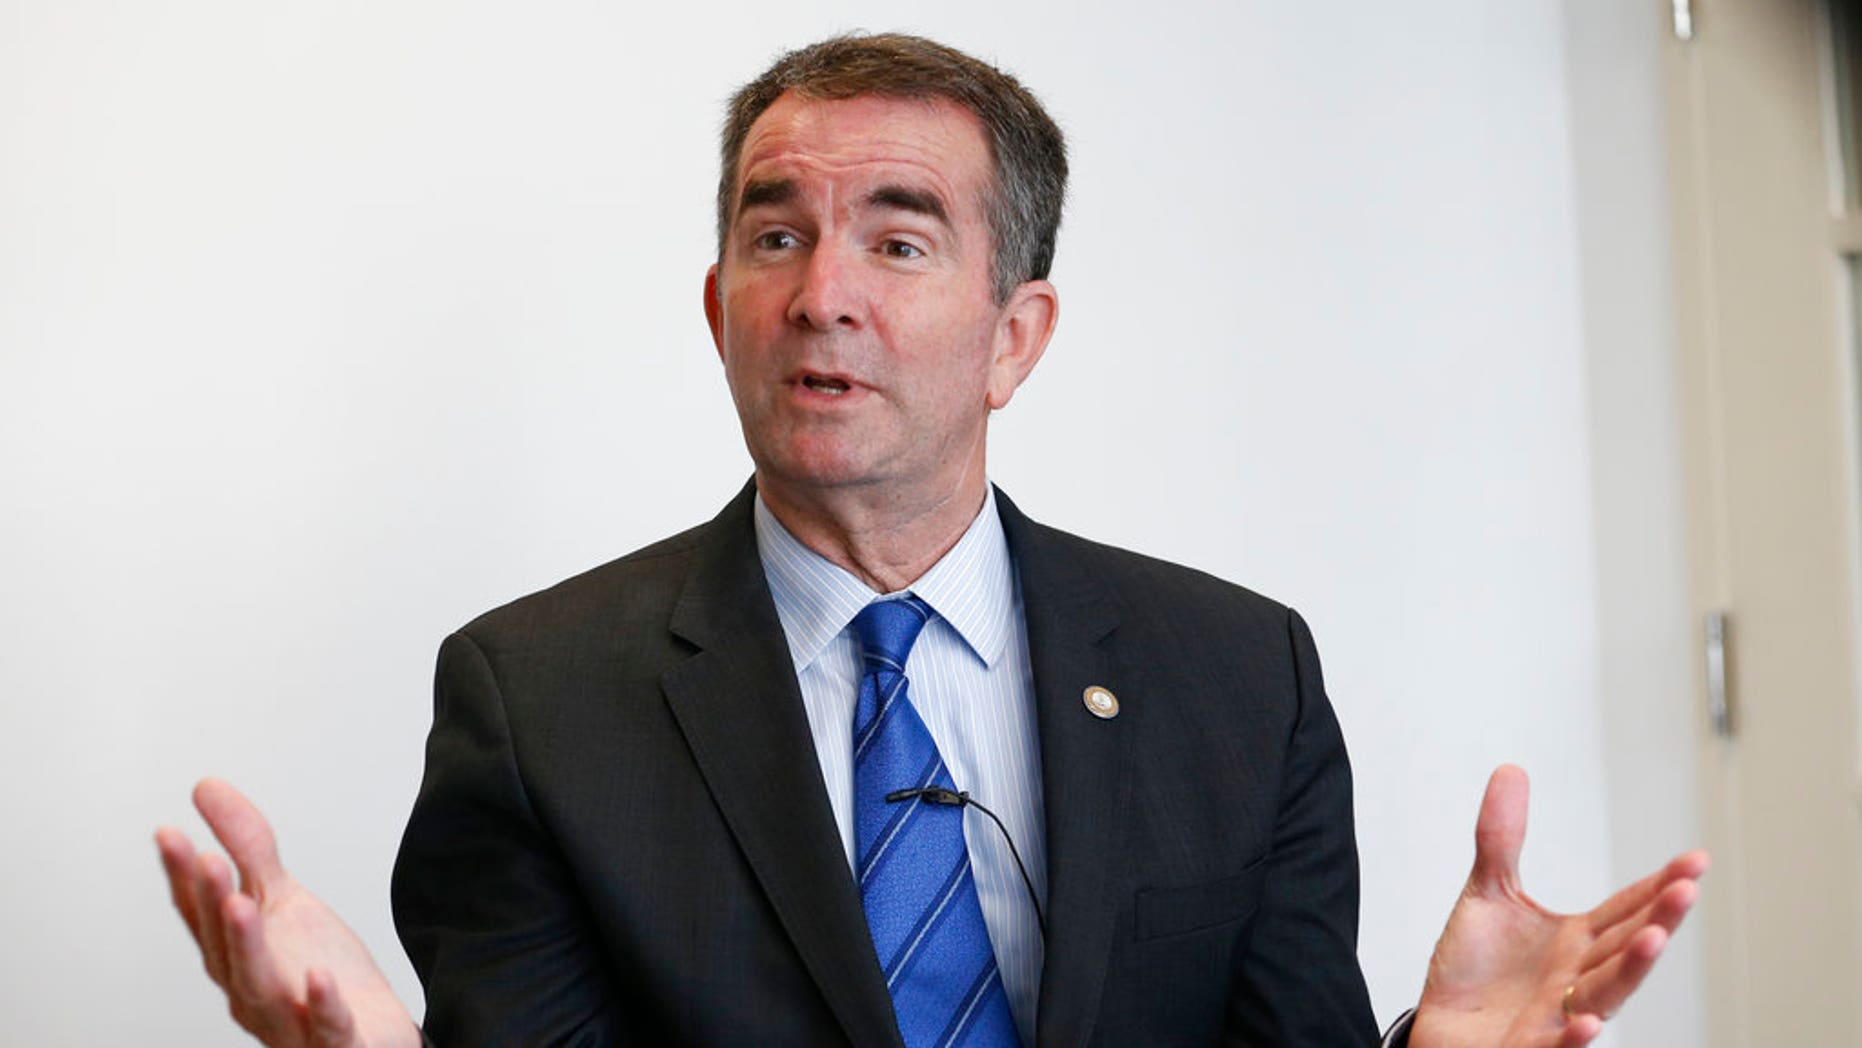 Ralph Northam, Virginia's Democratic gubernatorial candidate, is the current lieutenant governor of the state.